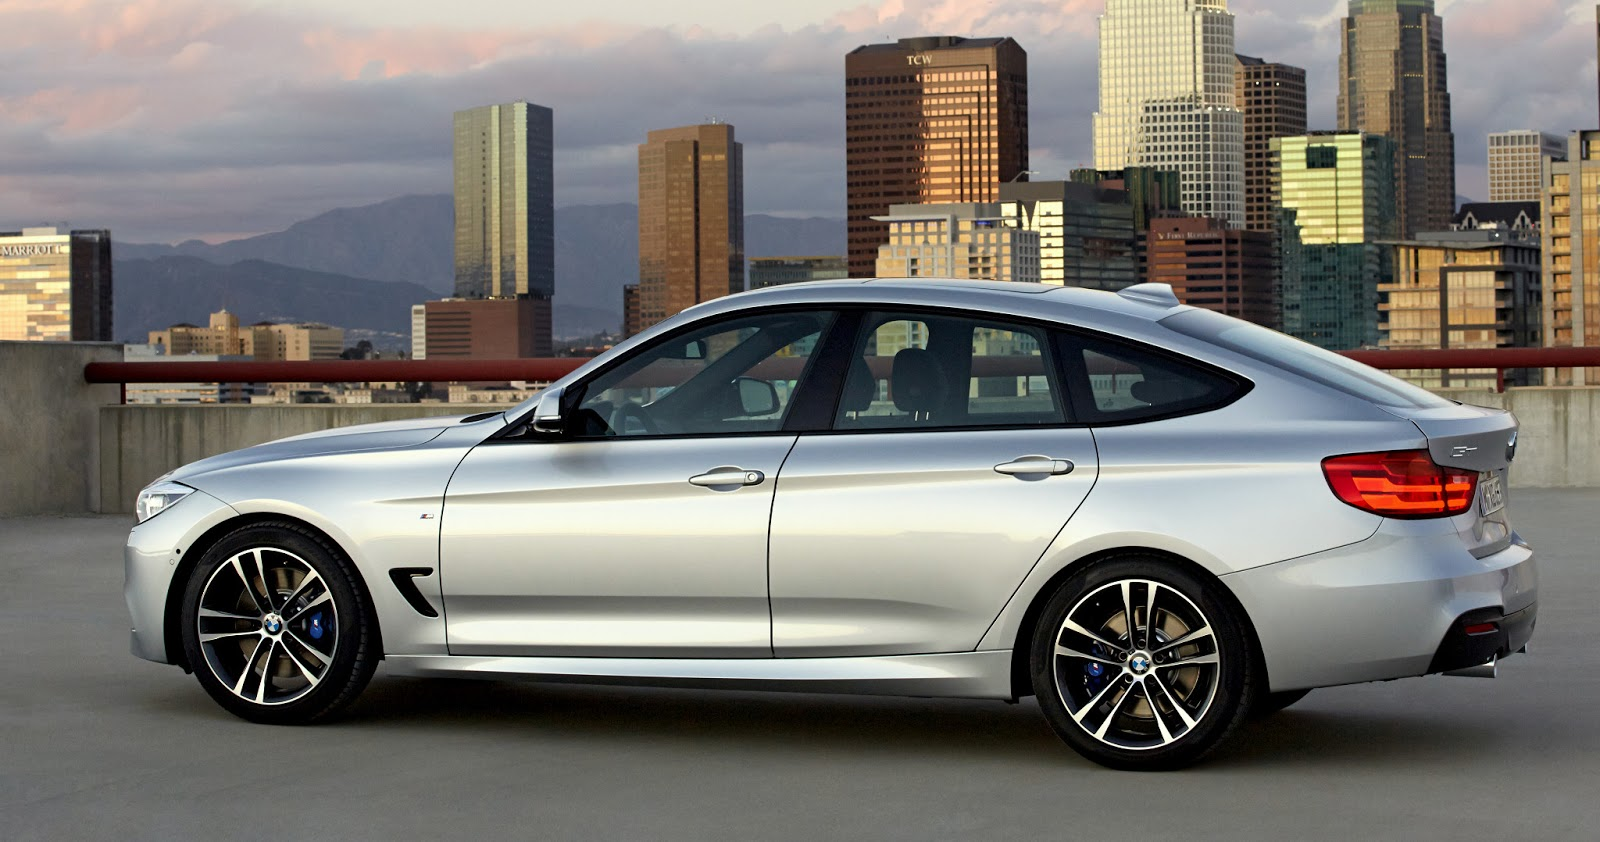 Review moreover 2014 Station Wagon Buyer S Guide together with 2014 Bmw 3 Series Gran Turismo Gets together with 2016 as well Showthread. on bmw 328i 4 cylinder